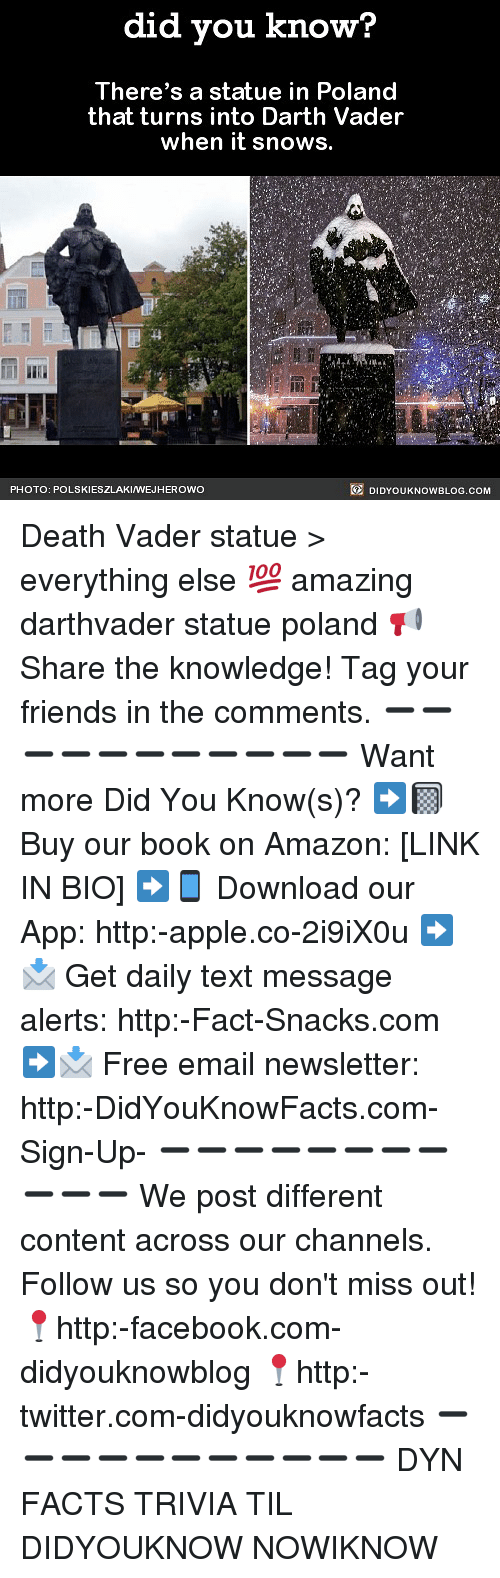 Amazon, Apple, and Darth Vader: did vou know?  There's a statue in Poland  that turns into Darth Vader  when it snows  Tl  PHOTO: POLSKIESZLAKIWEJHEROWO  DIDYOUKNOWBLOG.COM Death Vader statue > everything else 💯 amazing darthvader statue poland 📢 Share the knowledge! Tag your friends in the comments. ➖➖➖➖➖➖➖➖➖➖➖ Want more Did You Know(s)? ➡📓 Buy our book on Amazon: [LINK IN BIO] ➡📱 Download our App: http:-apple.co-2i9iX0u ➡📩 Get daily text message alerts: http:-Fact-Snacks.com ➡📩 Free email newsletter: http:-DidYouKnowFacts.com-Sign-Up- ➖➖➖➖➖➖➖➖➖➖➖ We post different content across our channels. Follow us so you don't miss out! 📍http:-facebook.com-didyouknowblog 📍http:-twitter.com-didyouknowfacts ➖➖➖➖➖➖➖➖➖➖➖ DYN FACTS TRIVIA TIL DIDYOUKNOW NOWIKNOW